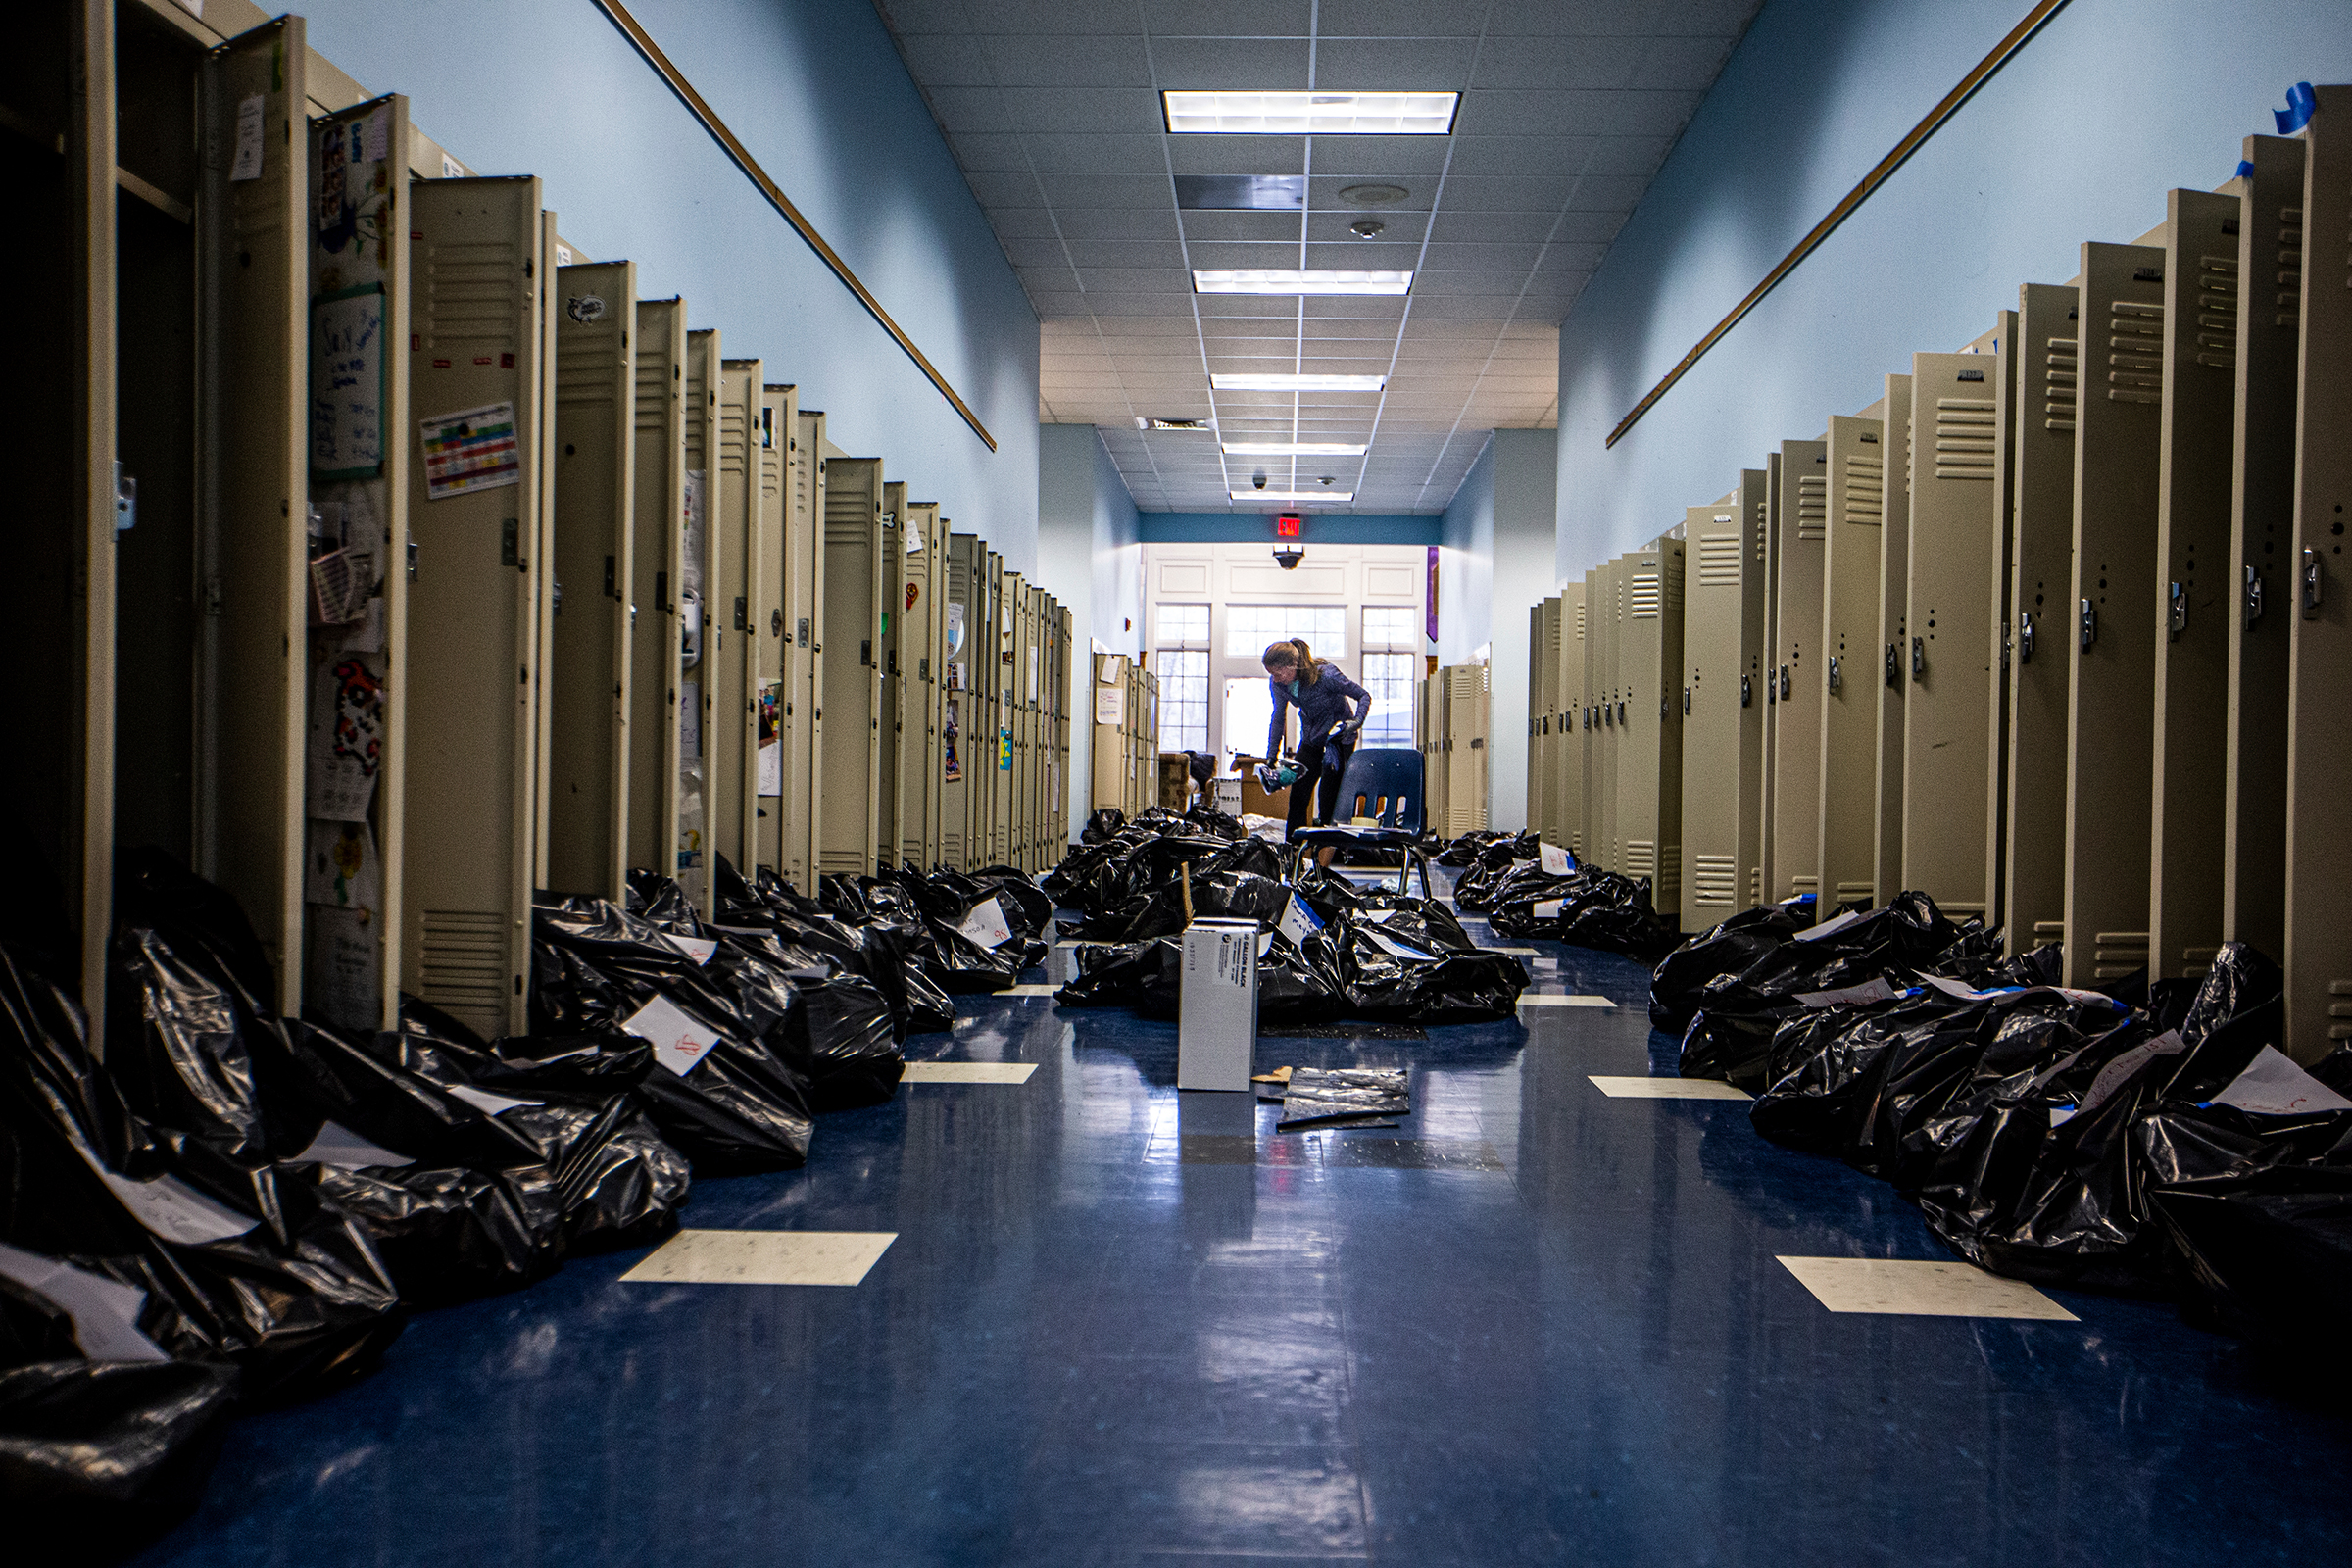 Kelen Walker packs students' locker contents into black trash bags as they clean and sanitize the school while students take online classes from home at Canterbury School in Greensboro, N.C., on March 17.